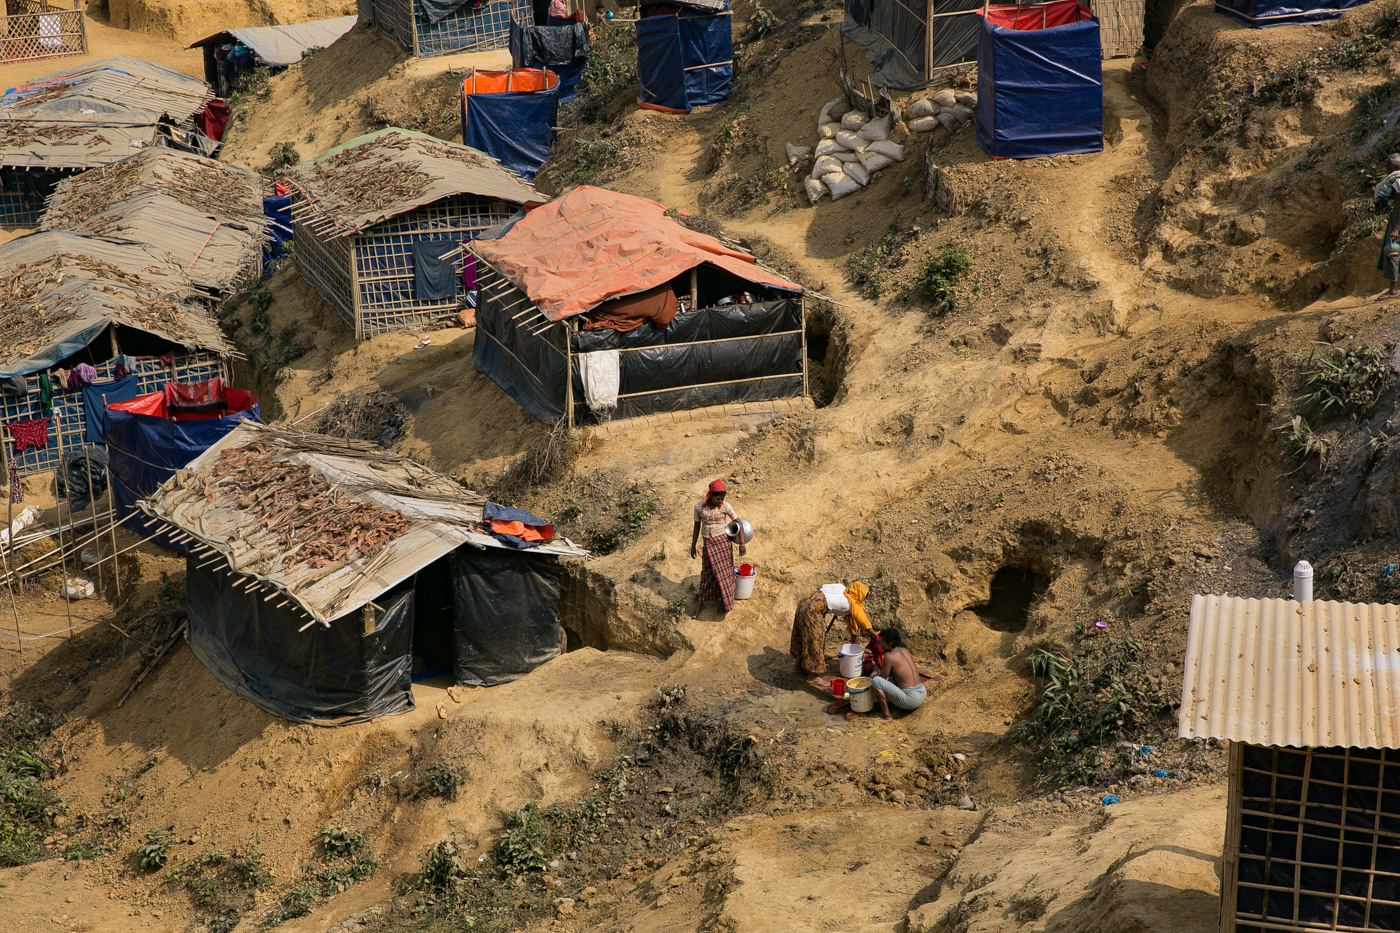 Toward Medium-Term Solutions for Rohingya Refugees and Hosts